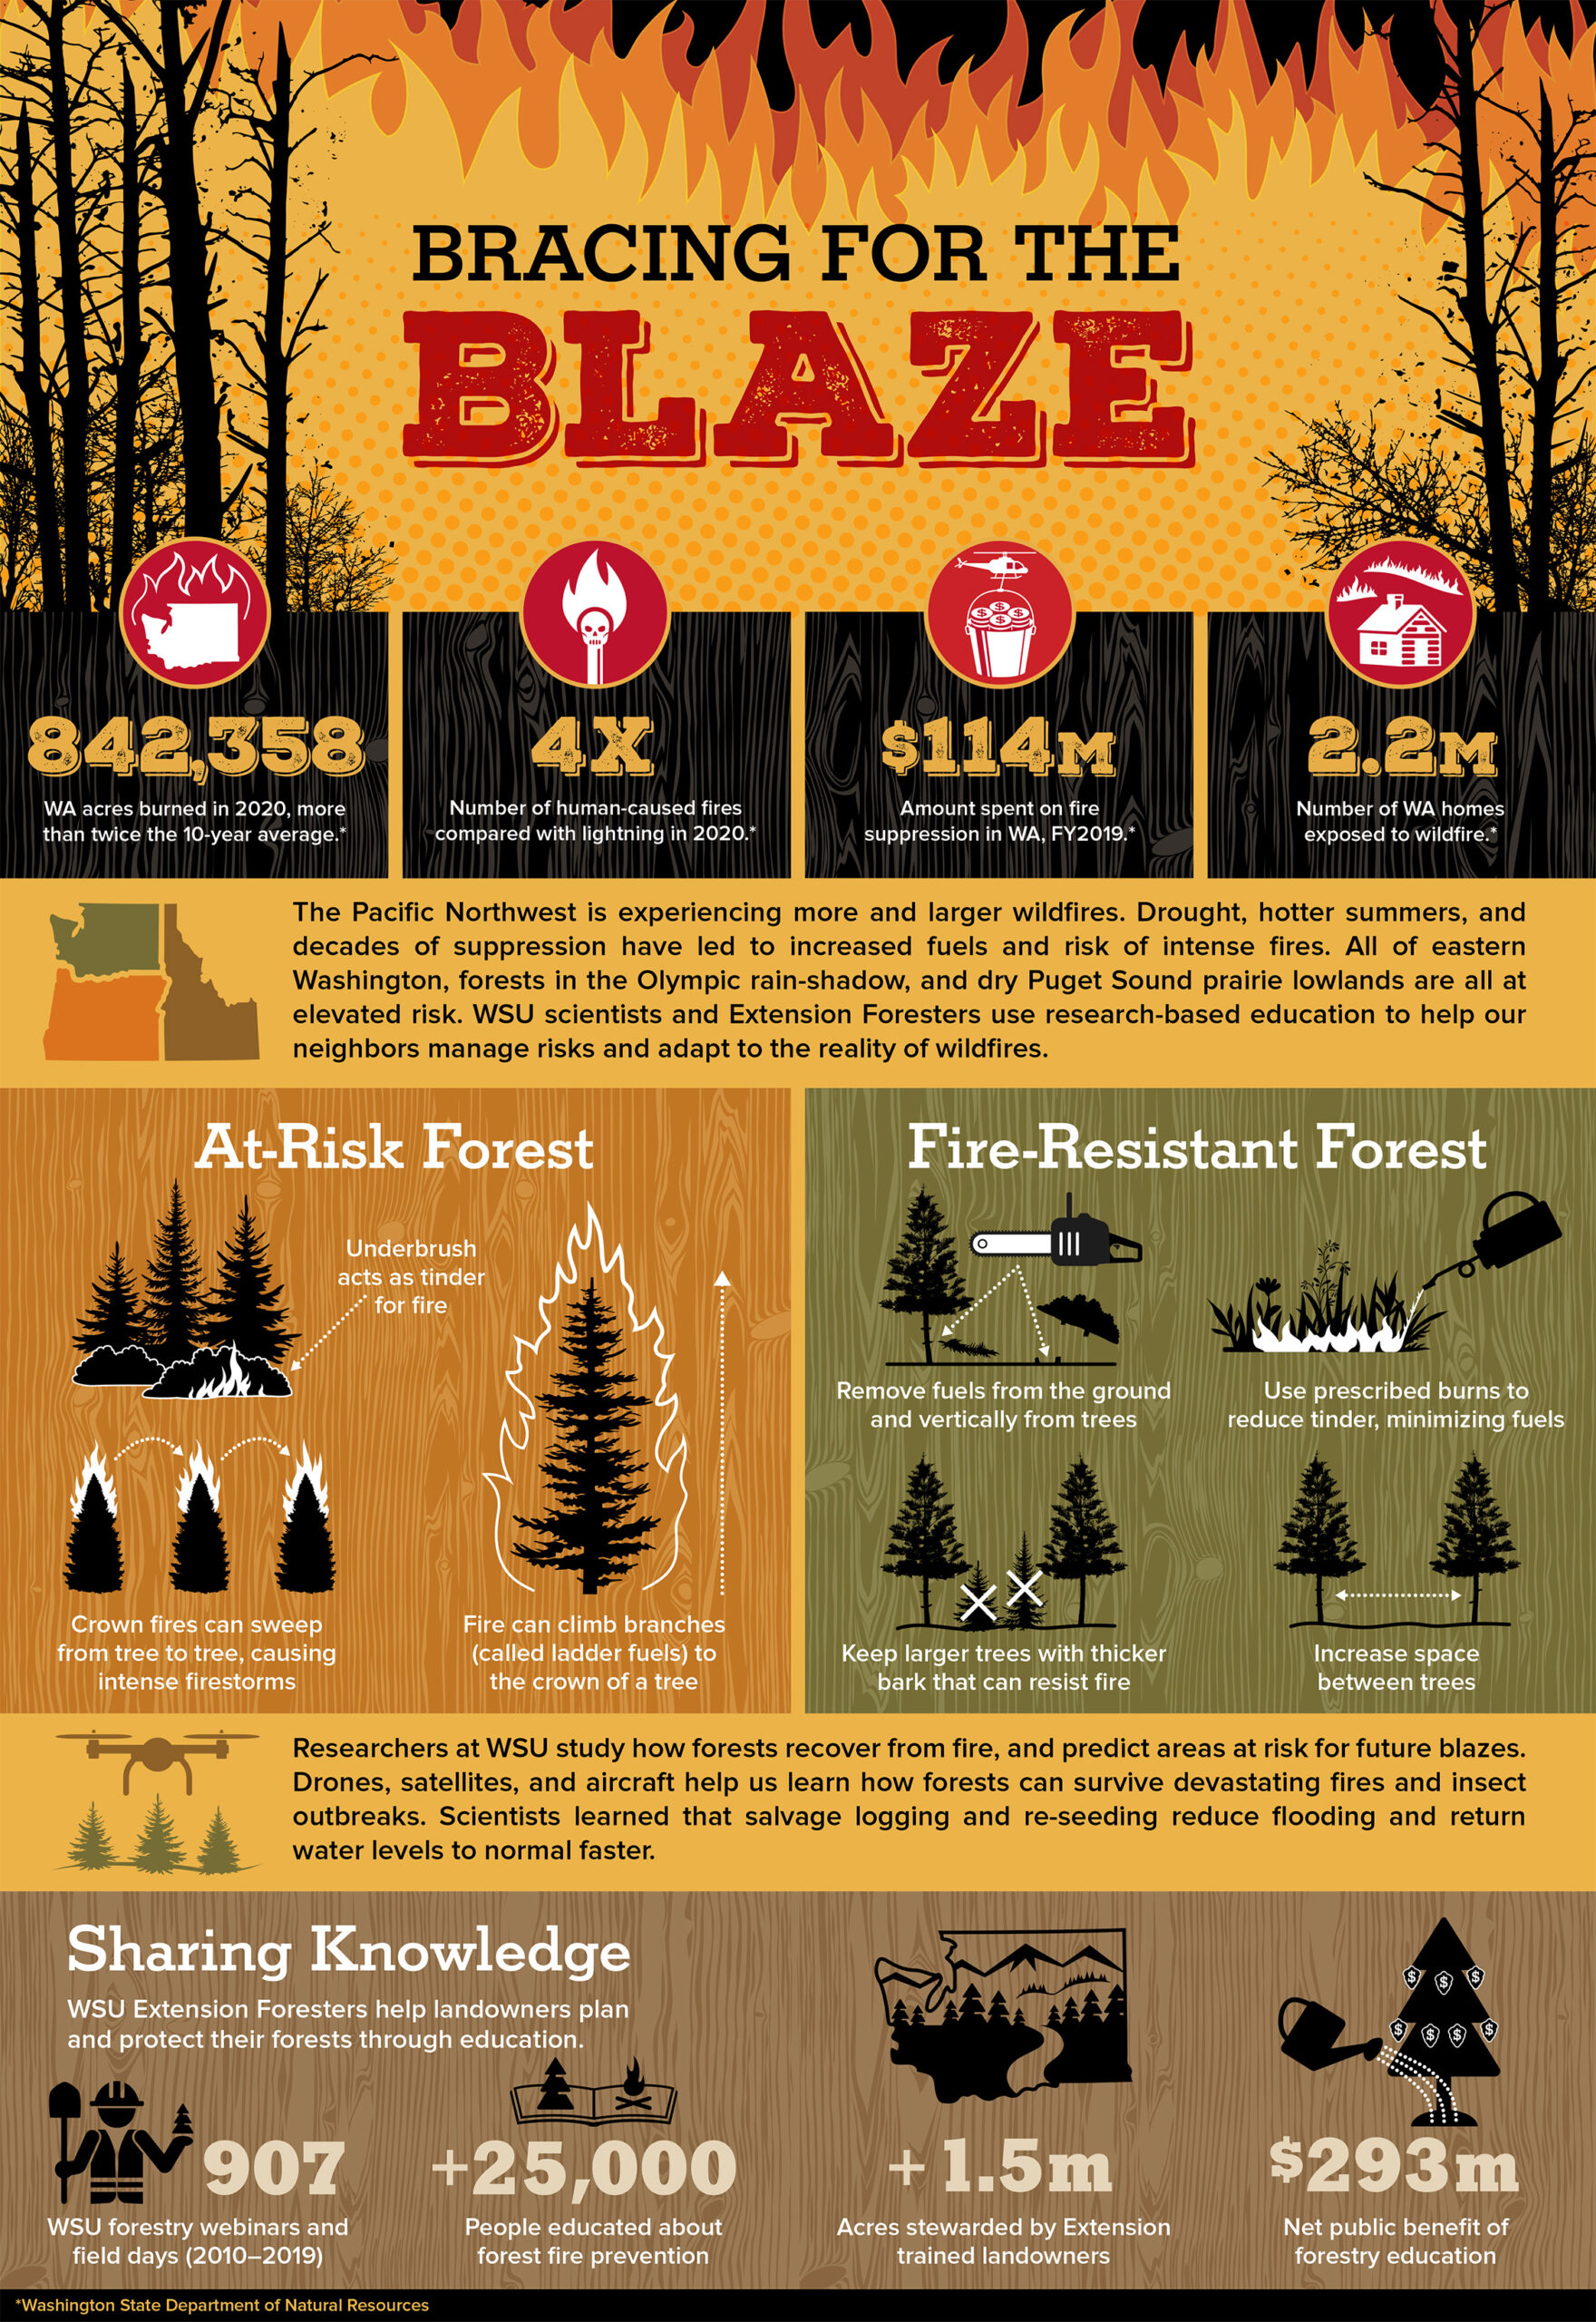 Infographic that shares the impact, dangers, and ways to make forests more resilient to wildfire.